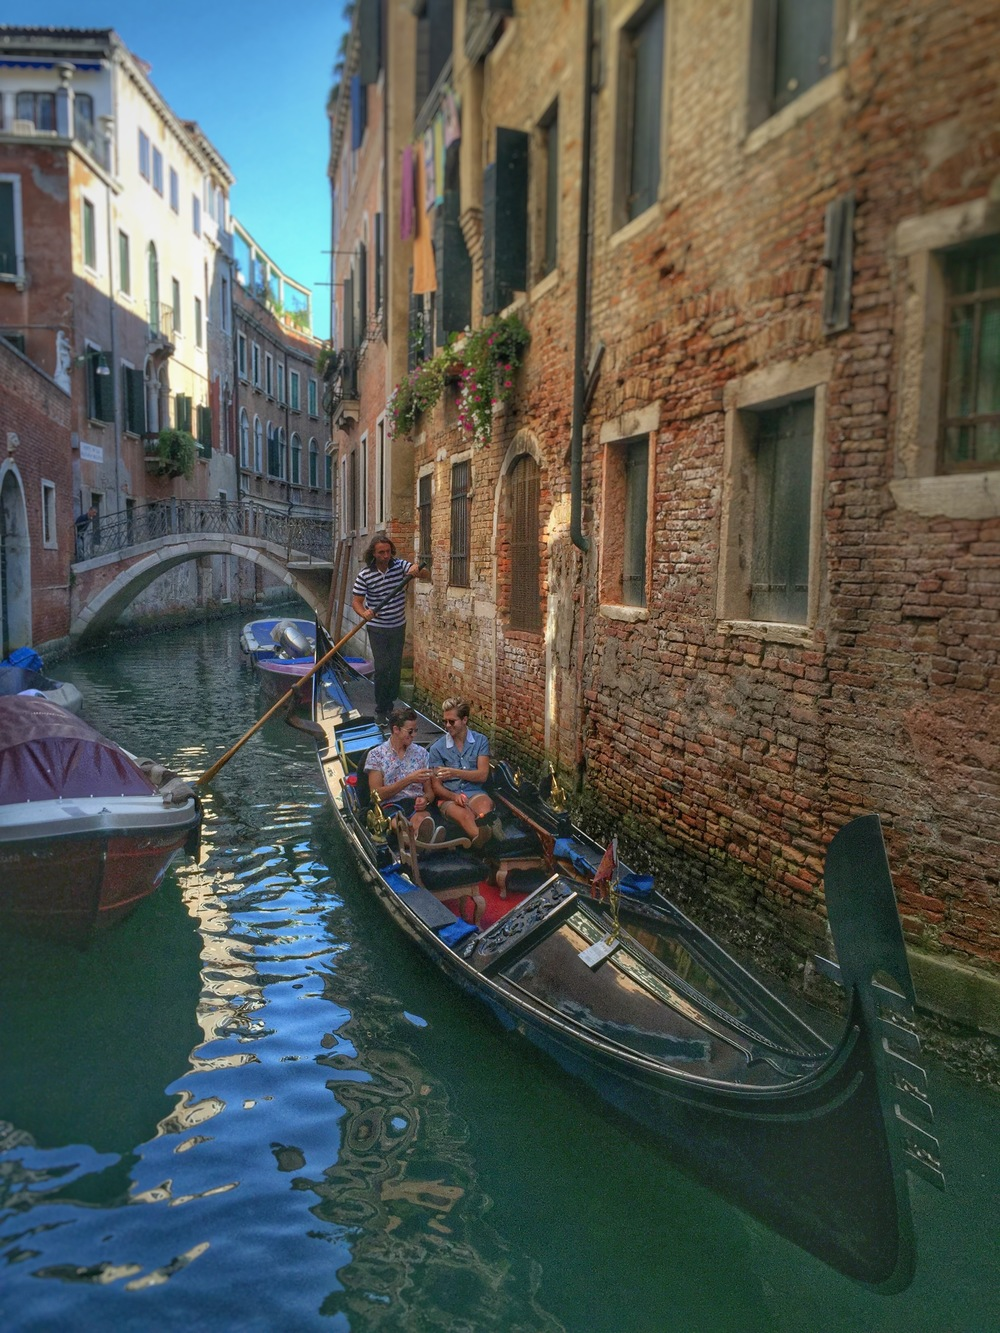 This photo was taken by a random tourist during our gondola ride. We recognized her at a cafe later that day and asked her to send it to us!